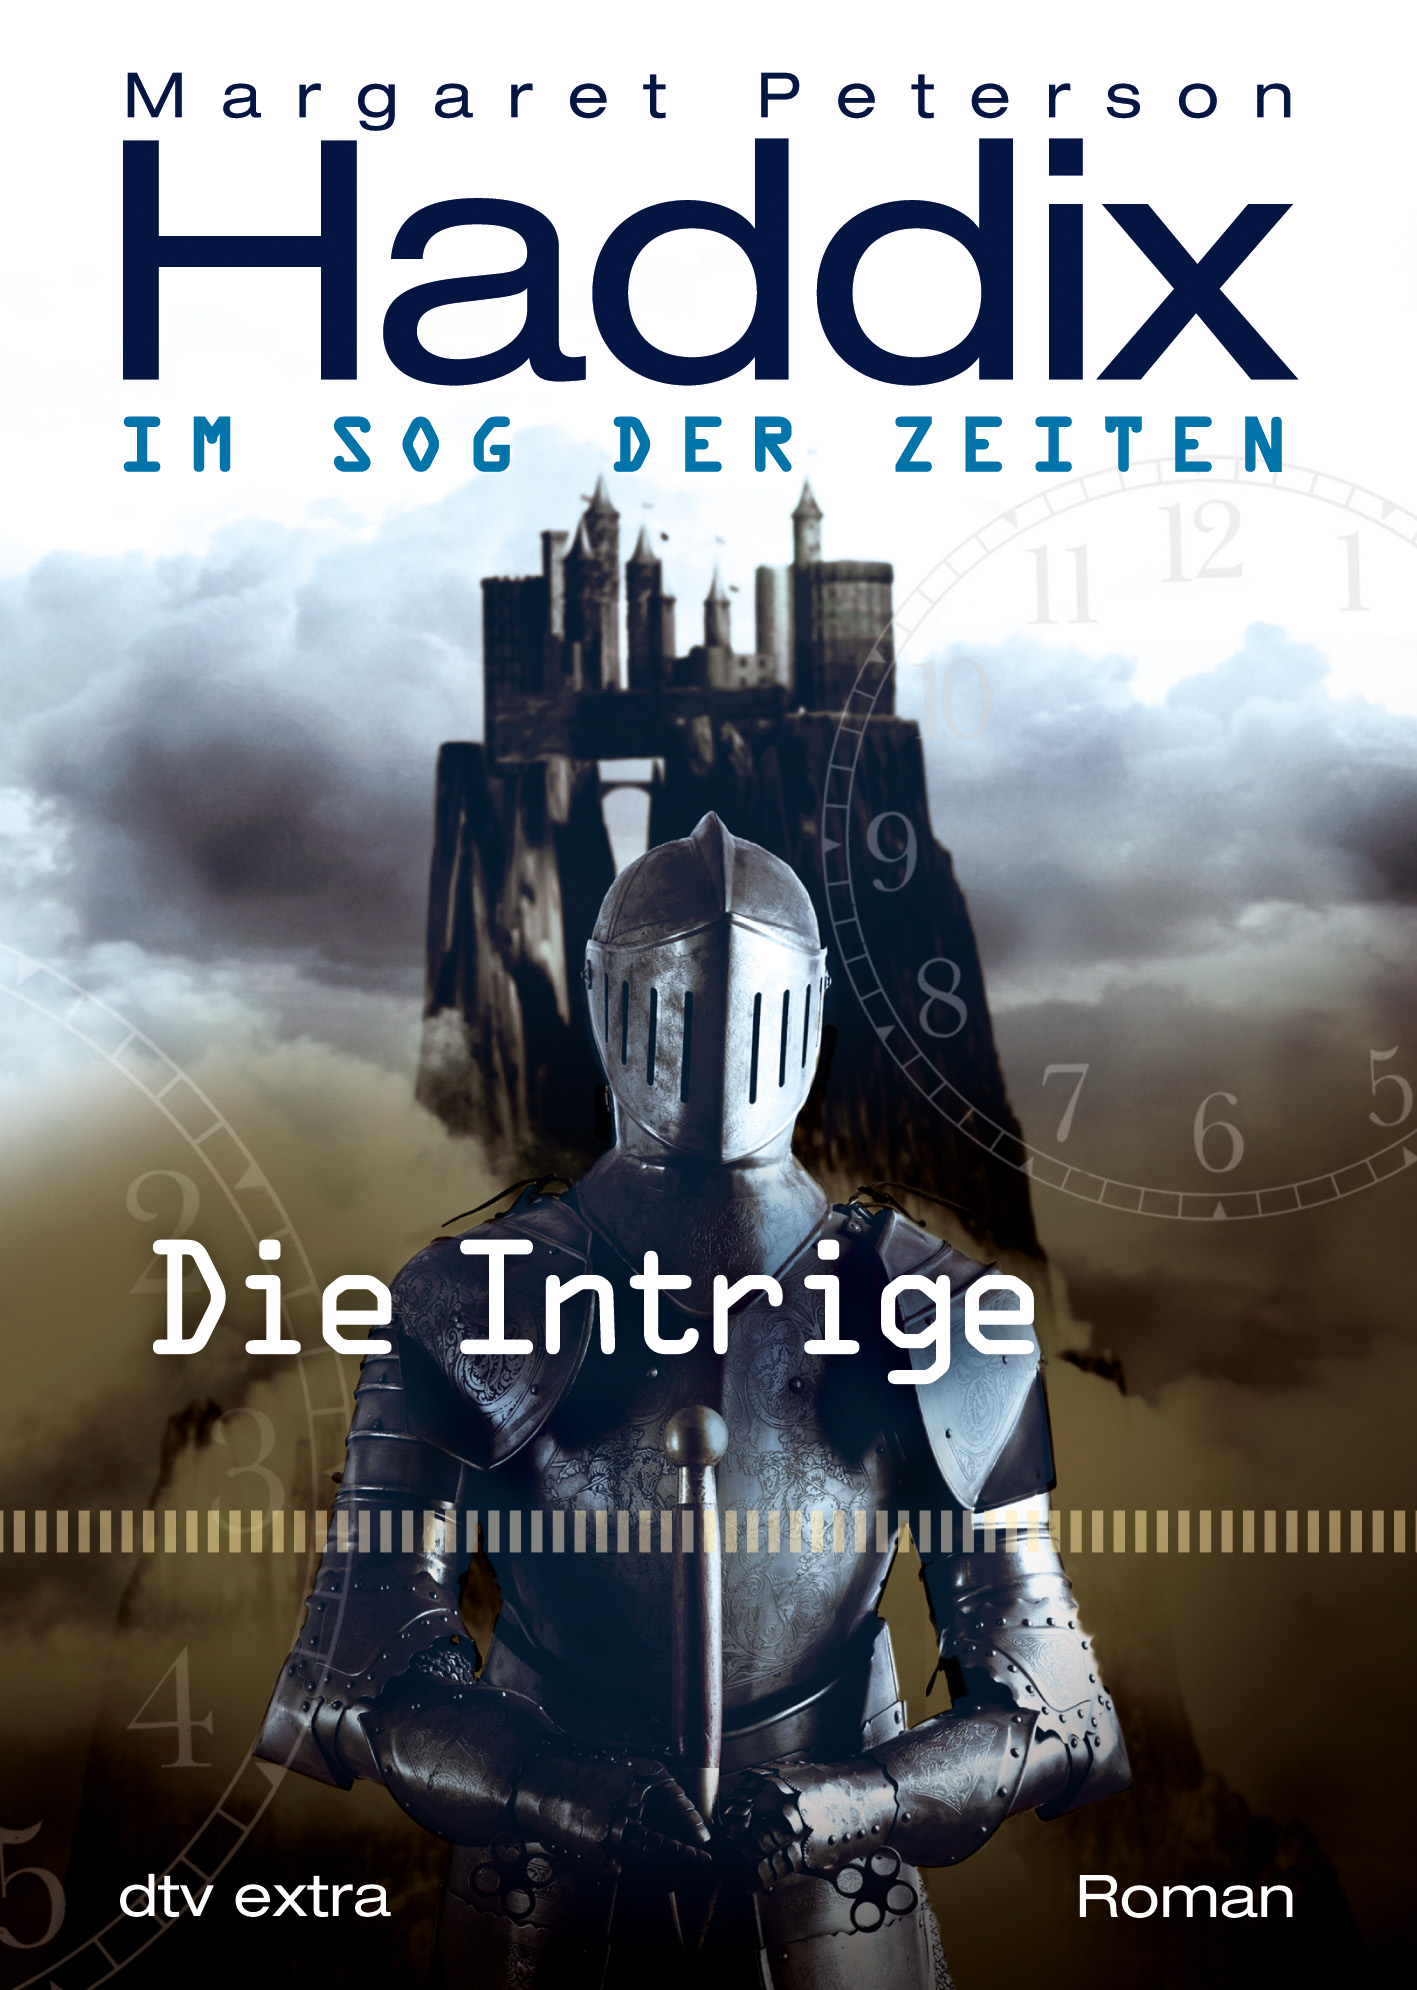 Margaret Peterson Haddix  Bettina Münch - Die Intrige Im Sog der Zeiten